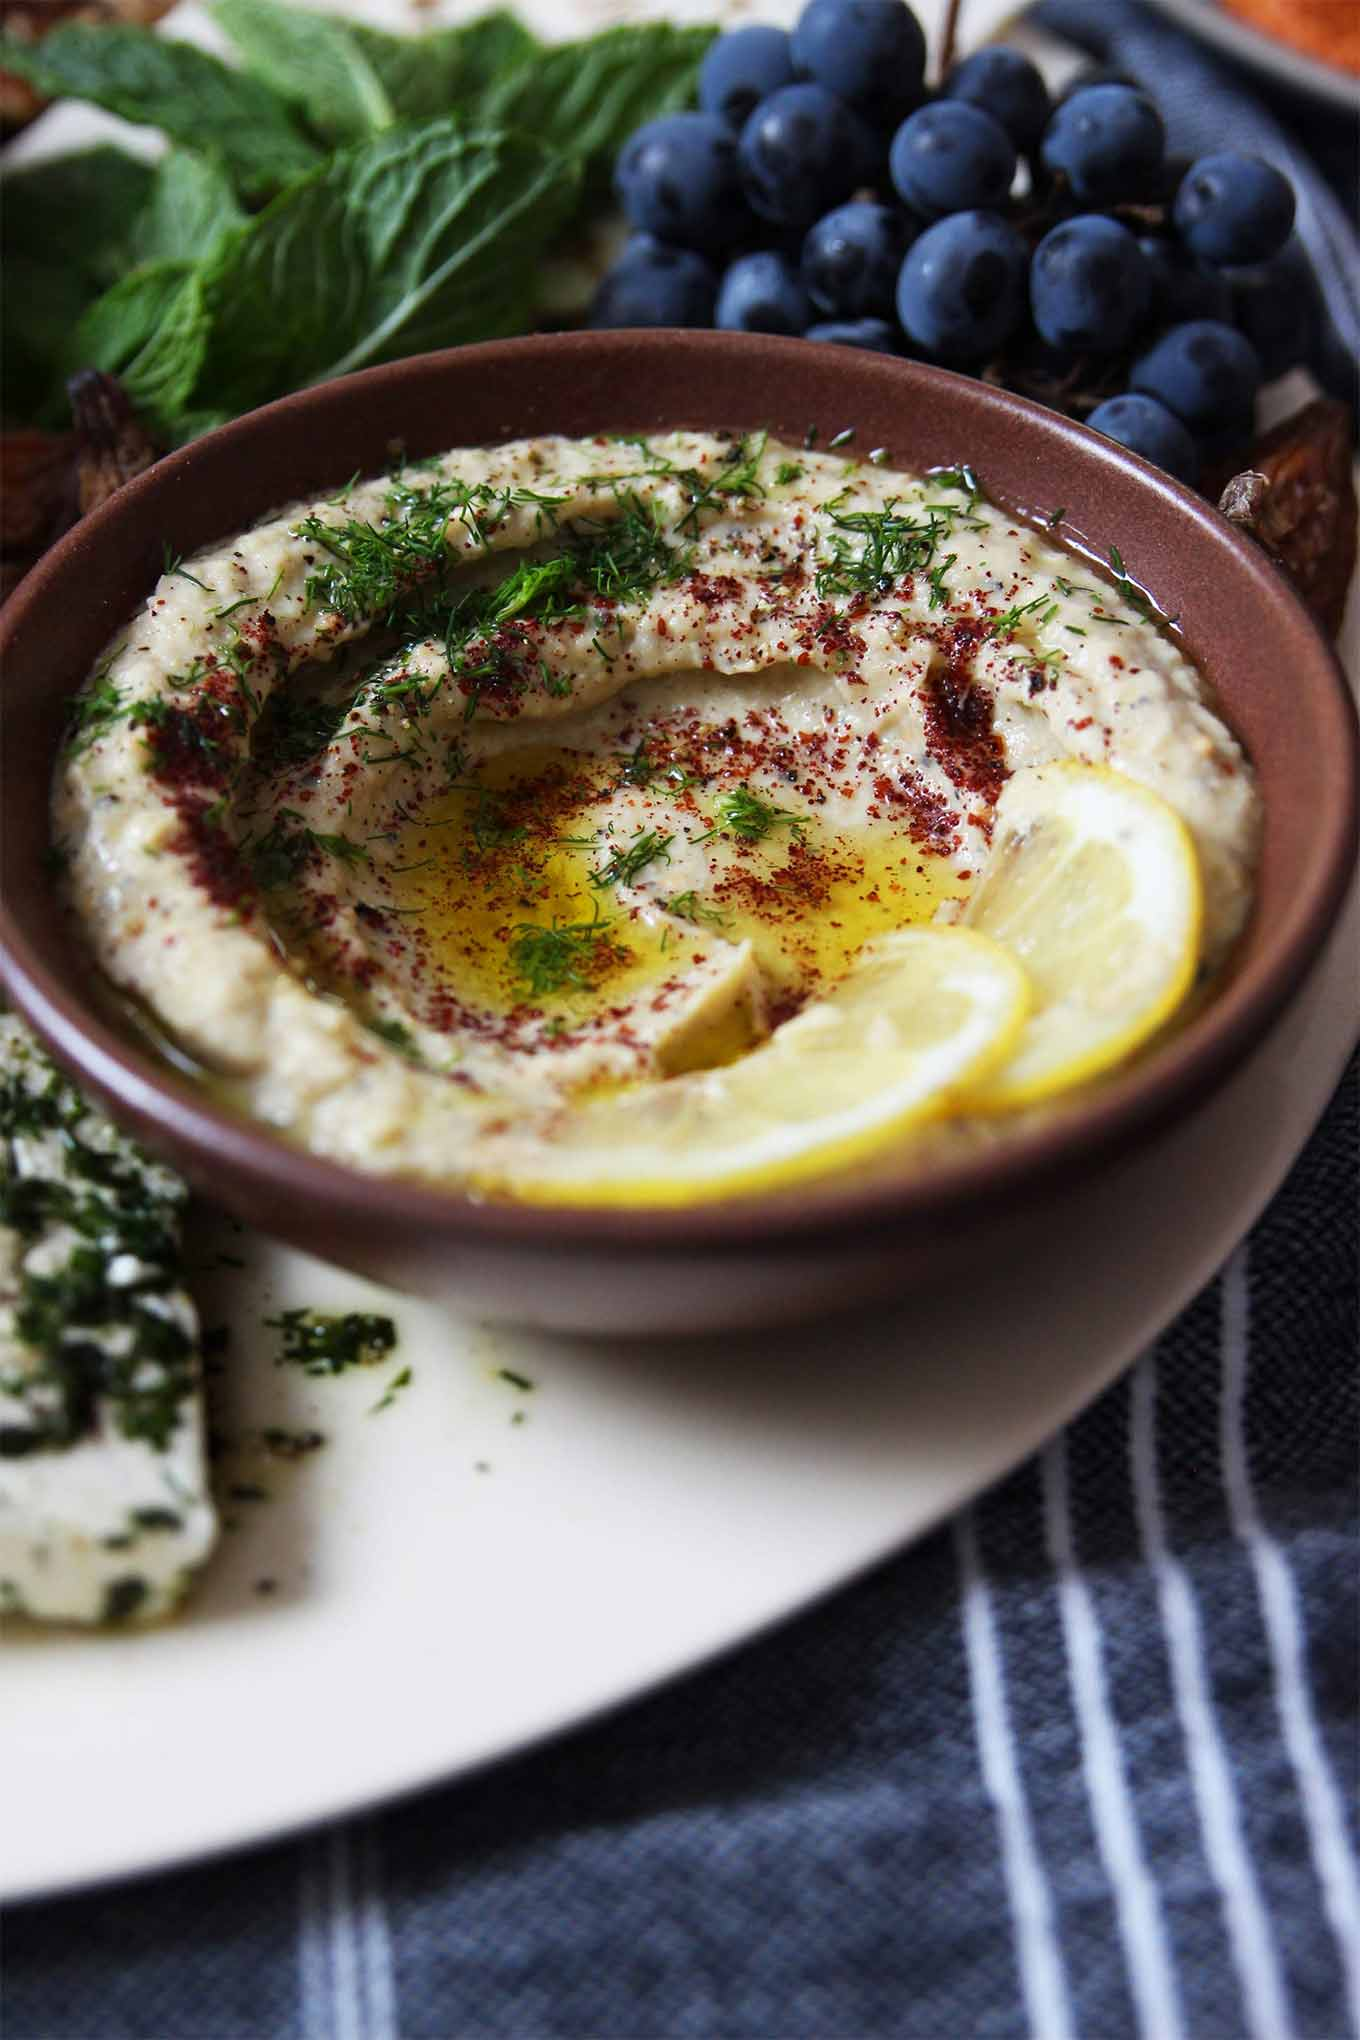 Eggplant recipes in season - baba ganoush and mezze platter by Honestly Yum